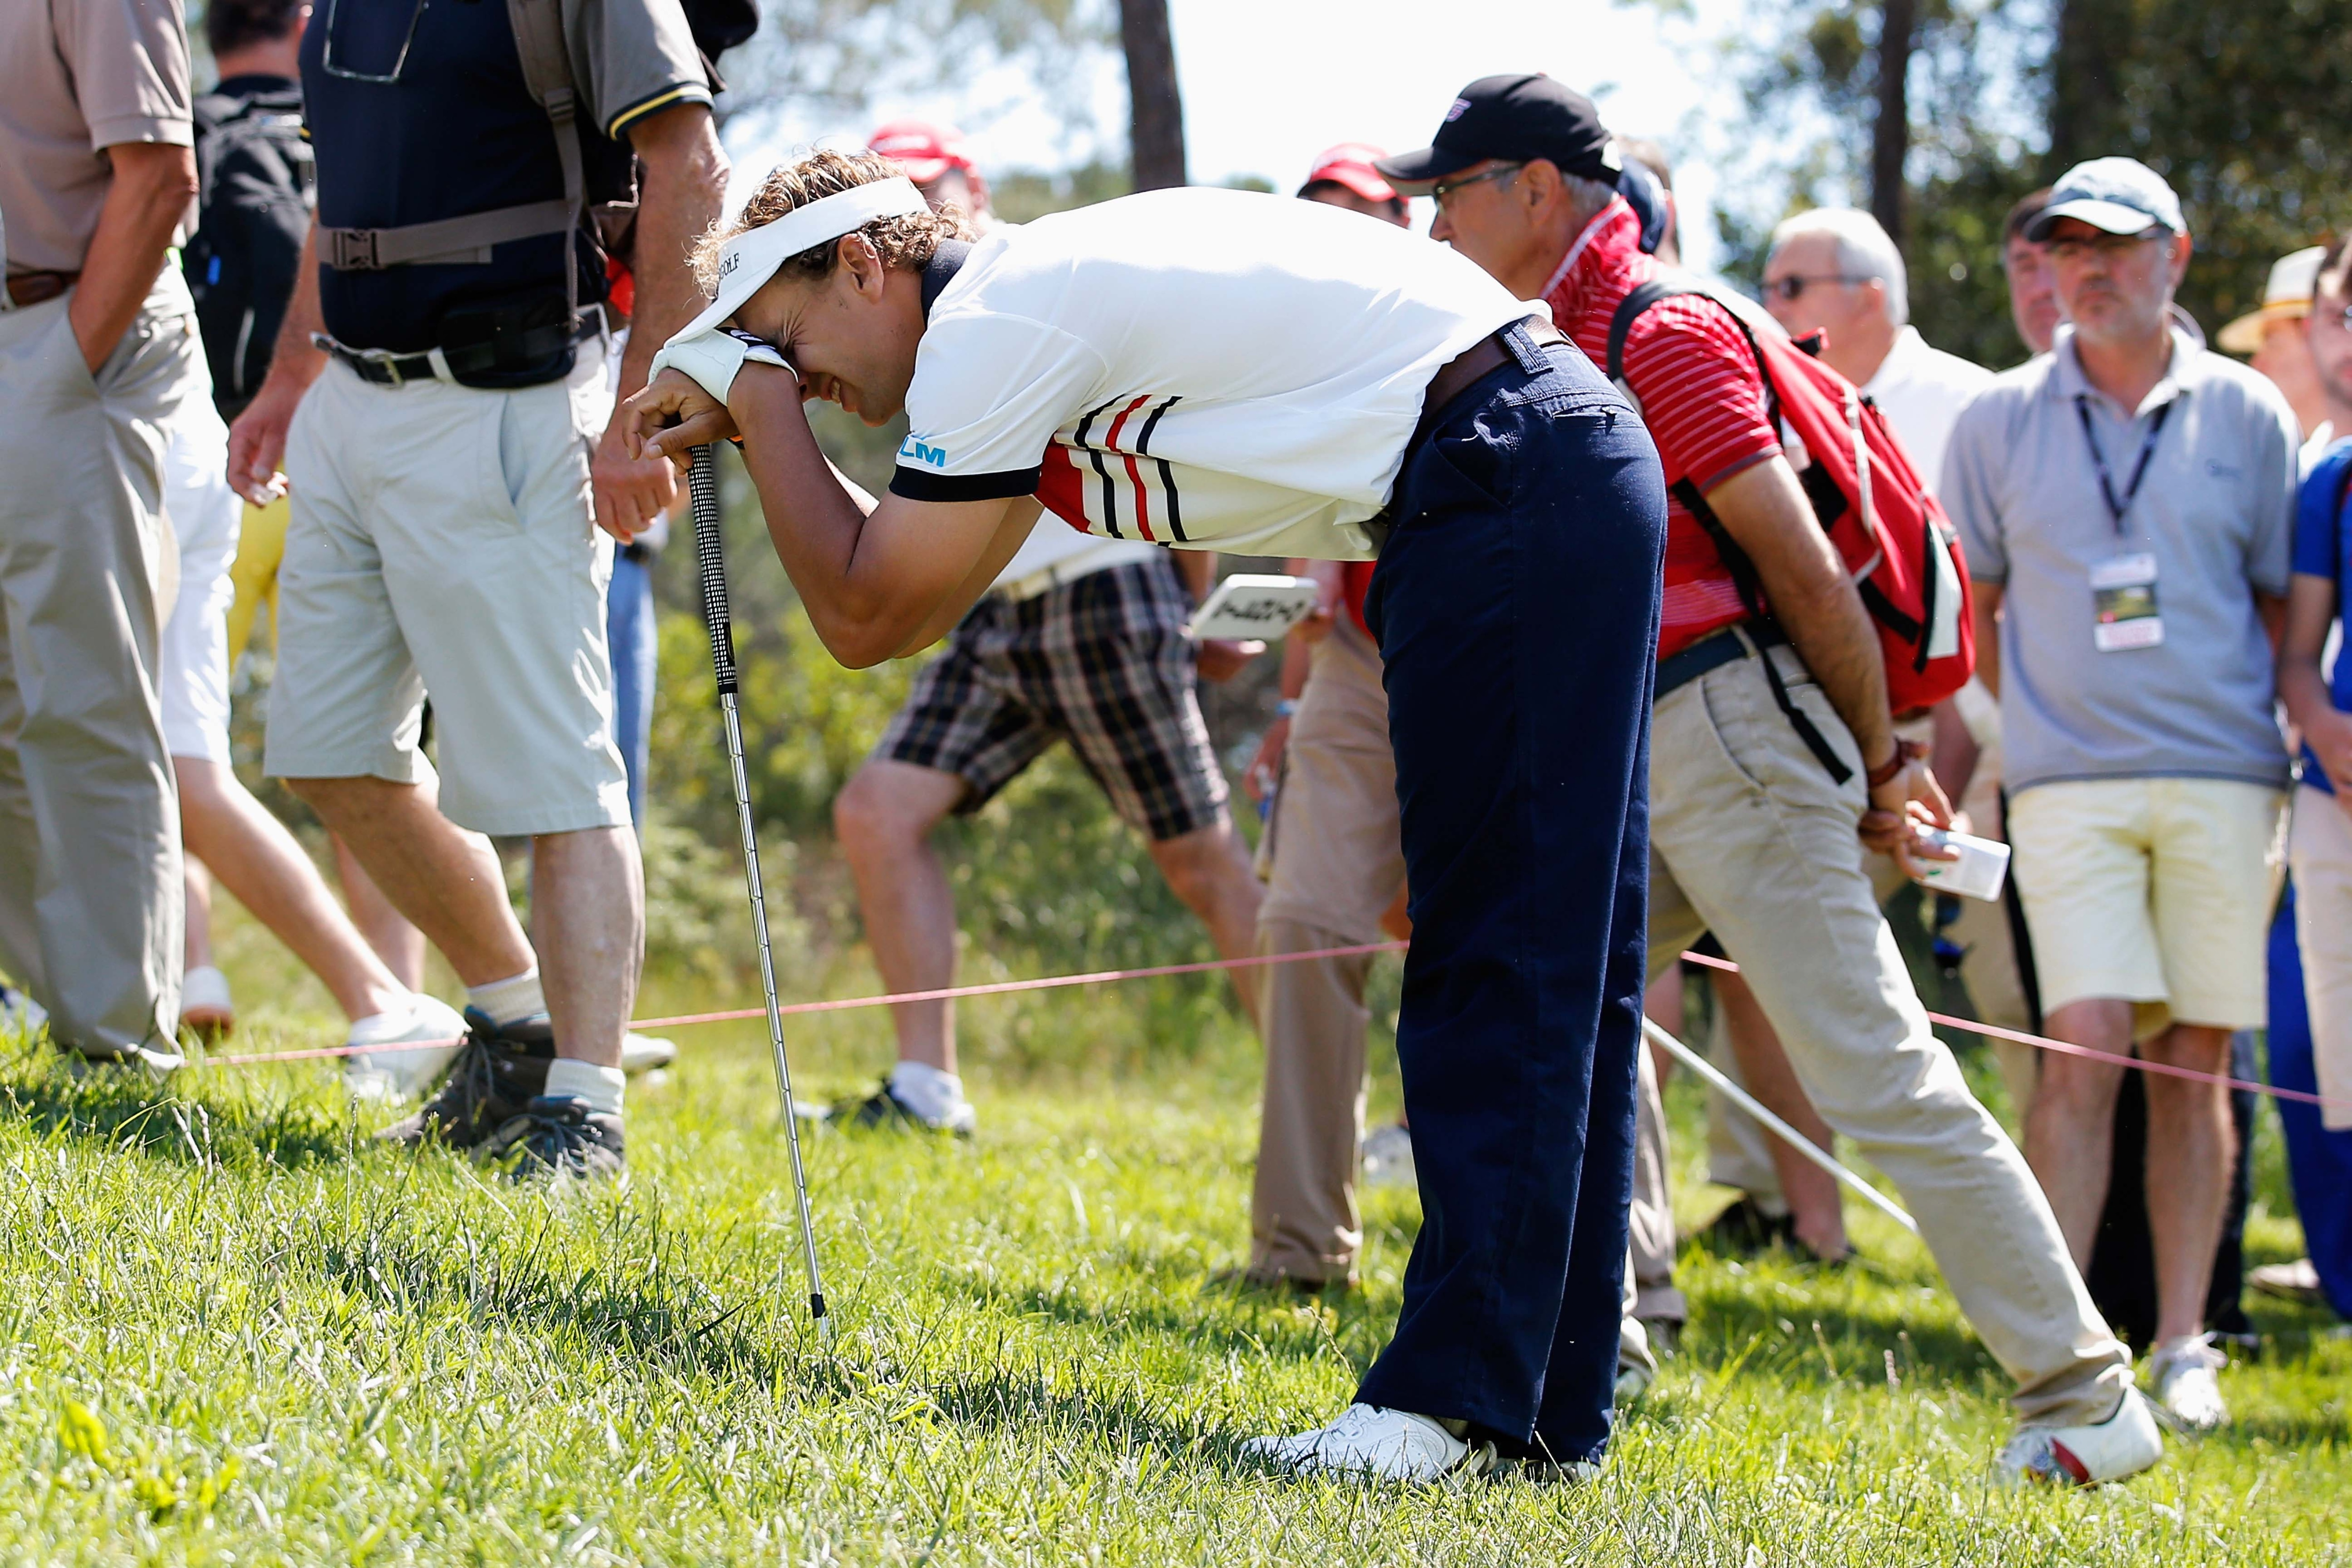 We're guessing this was a bad shot